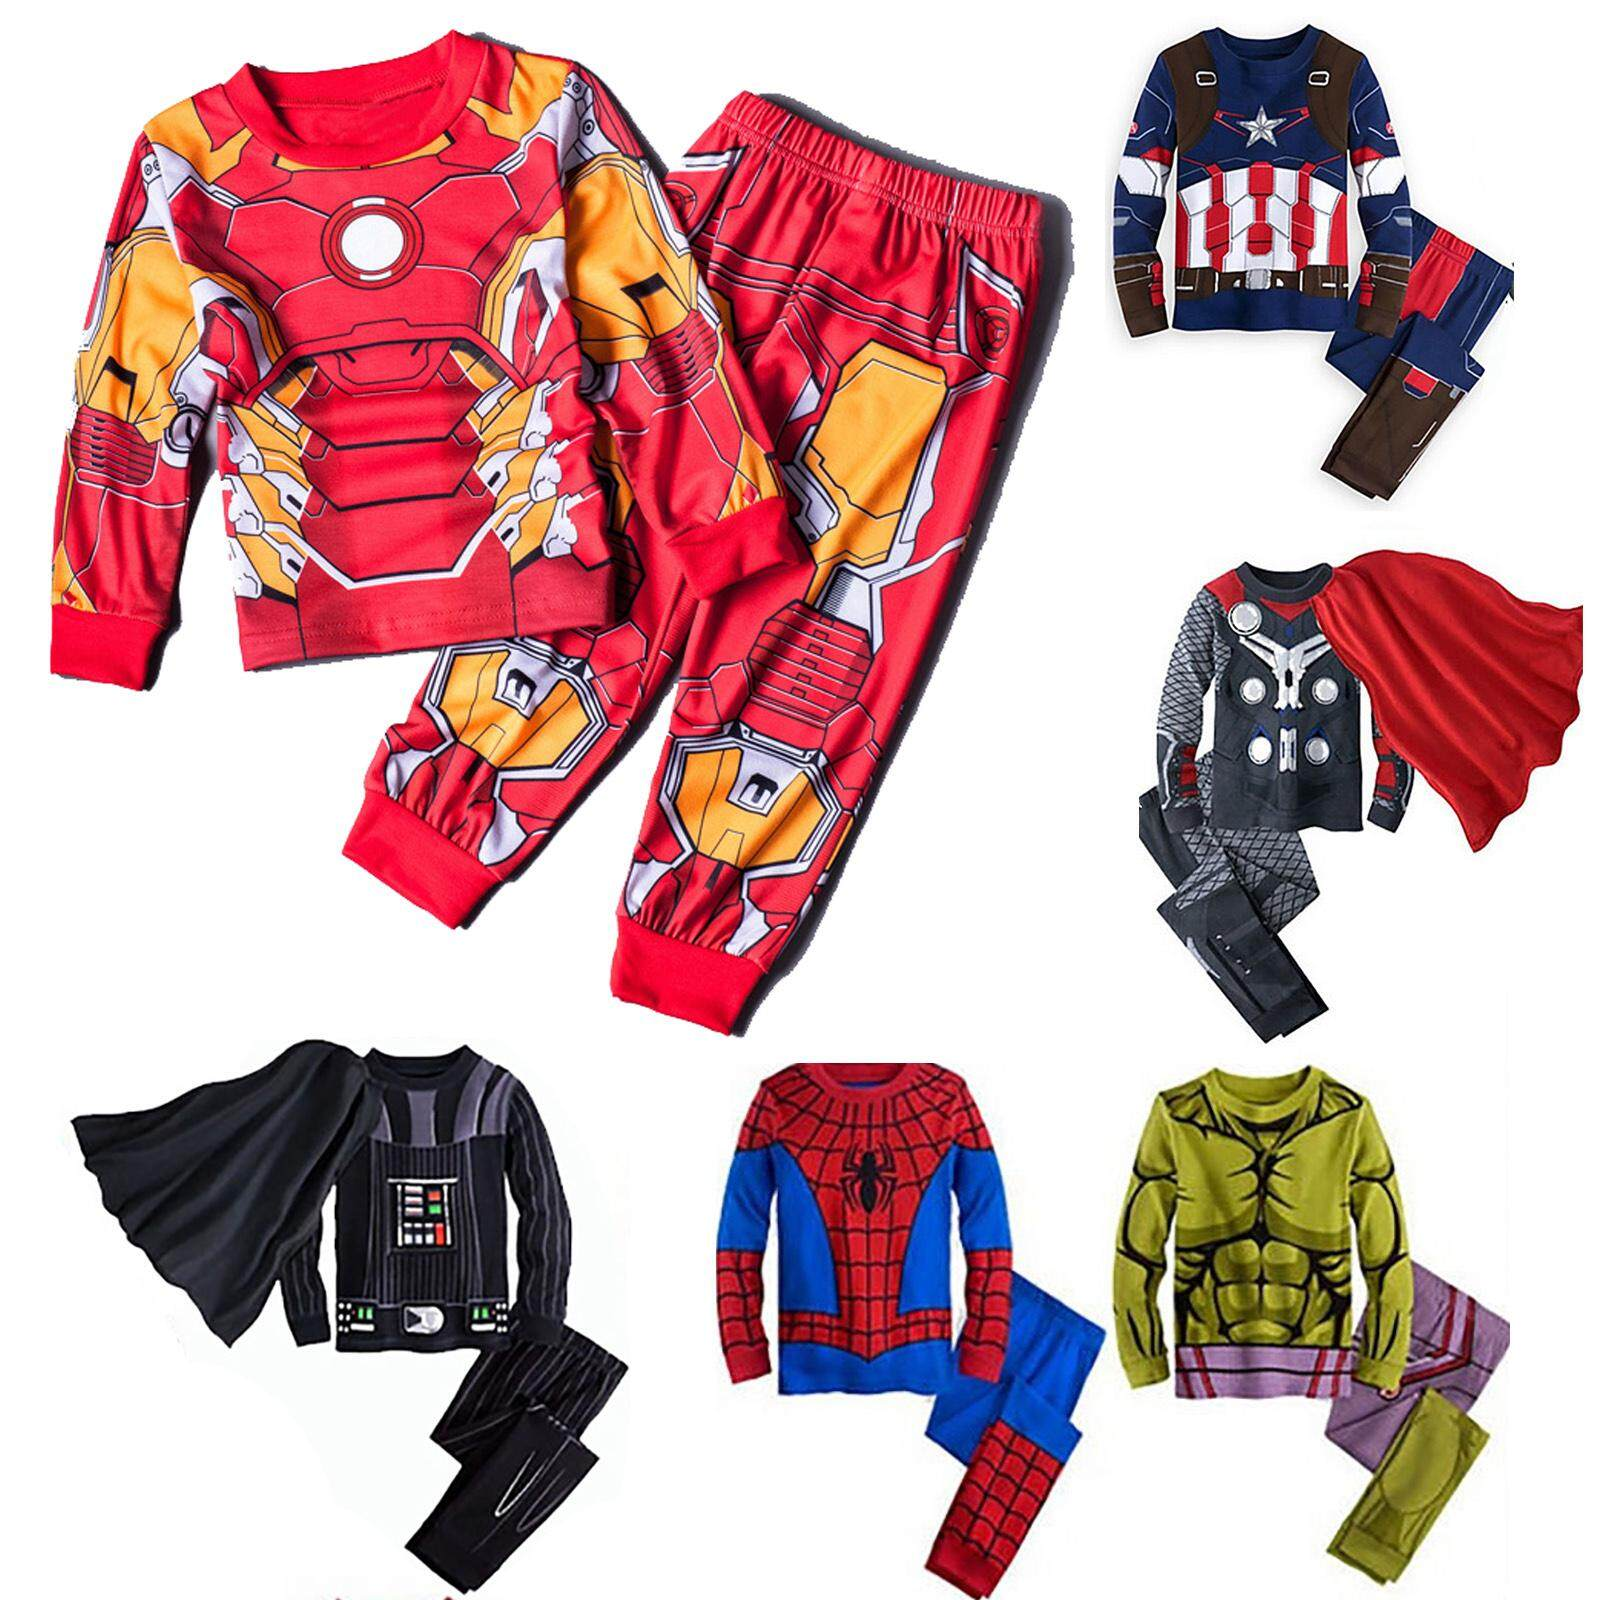 Fashion Kids Boys Soft 2pcs Long Sleeve Superhero Pajamas Set Sleepwear Cartoon Character Cosplay Costume Homewear By Linyoungstore.